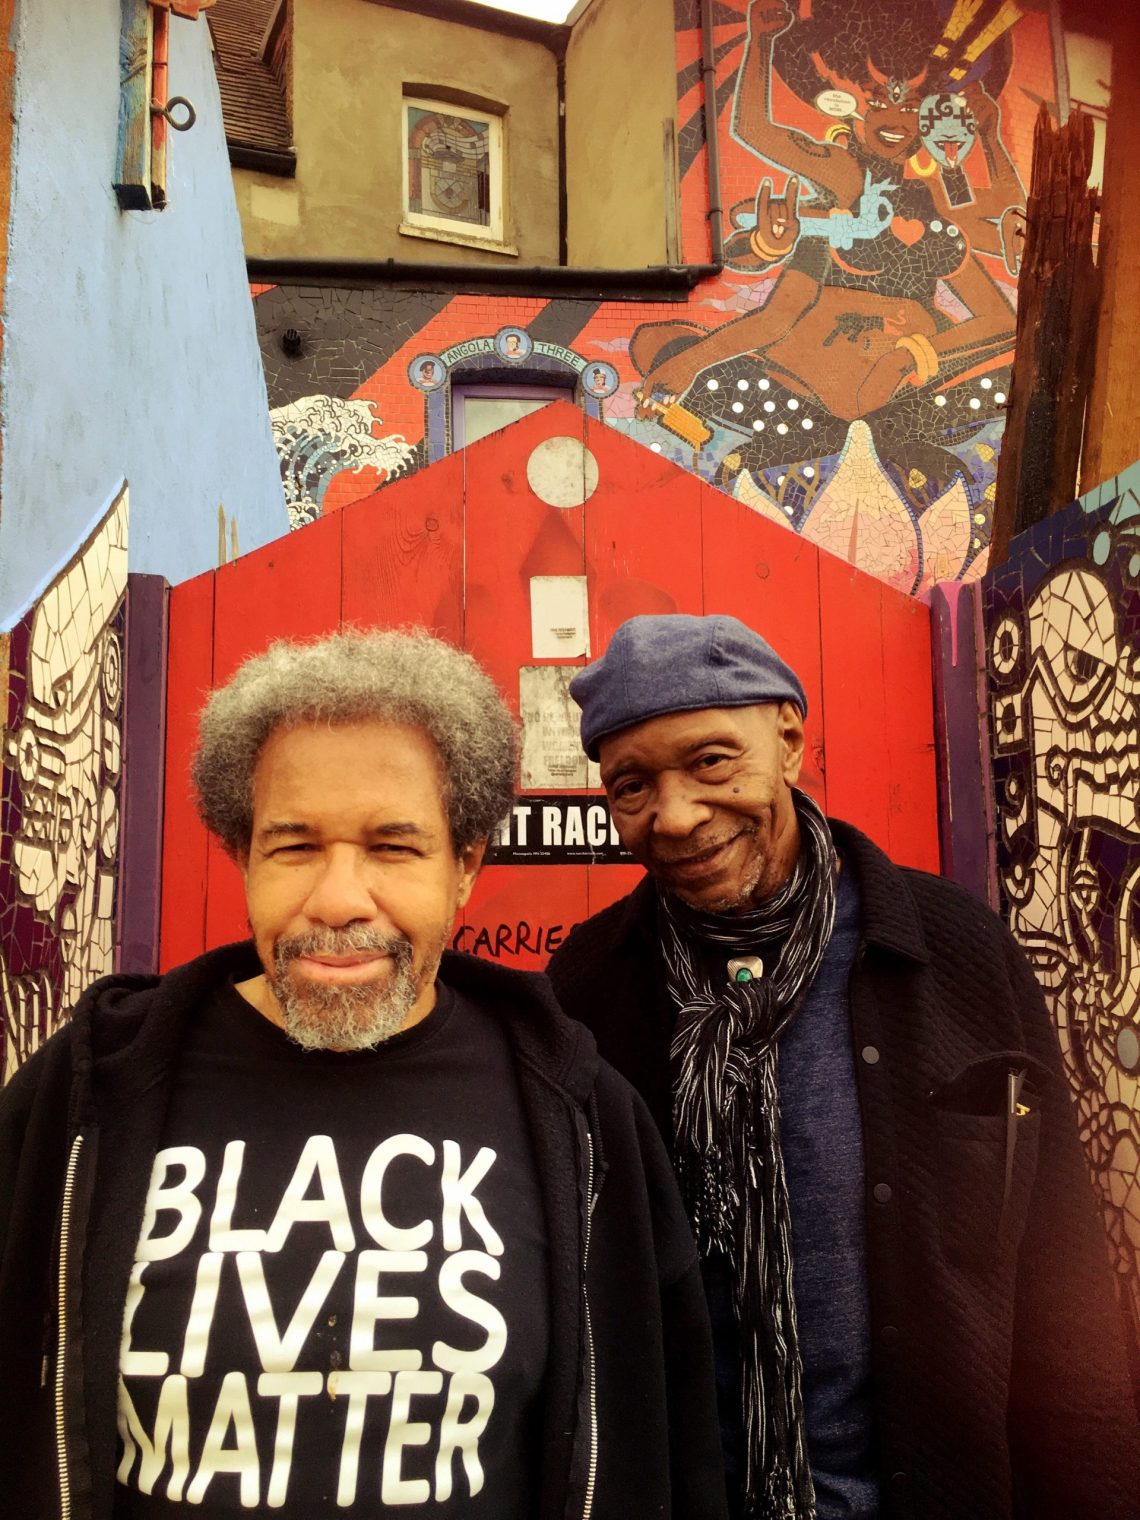 Albert Woodfox and Robert King two of the Angola 3 outside Carrie Reichardt's mosaic house